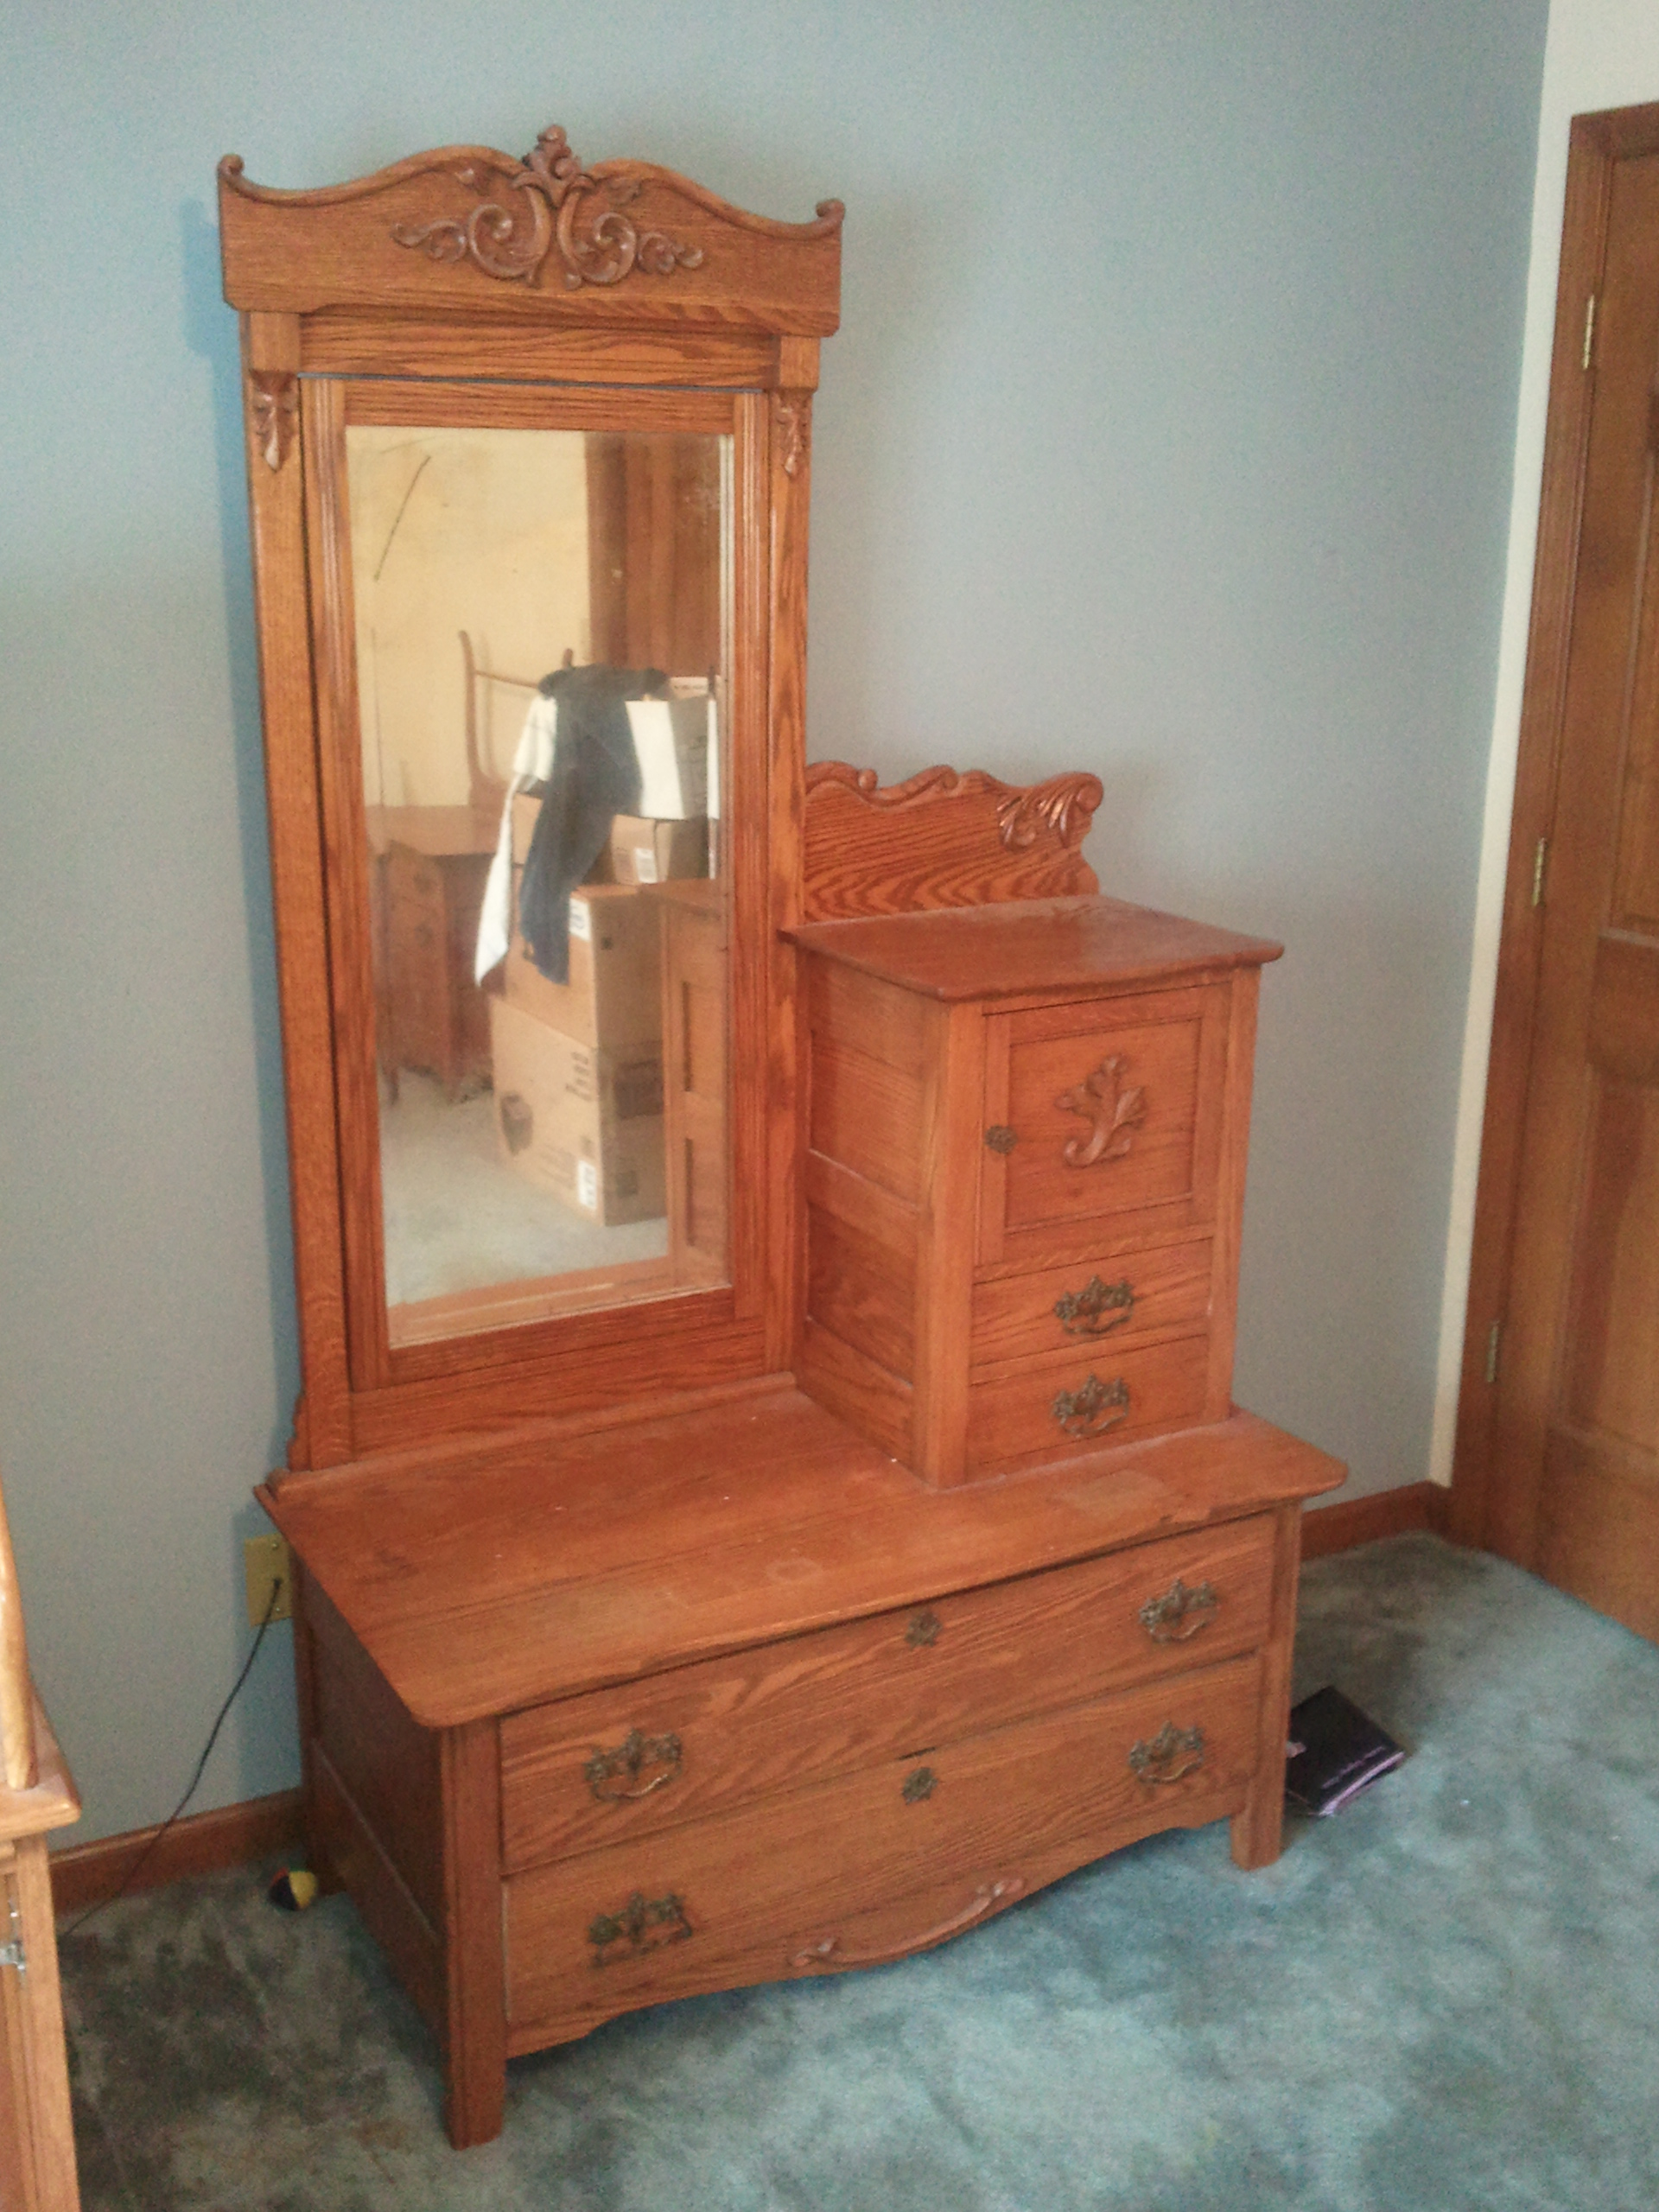 3 piece antique bedroom set for sale for 3 bedroom set